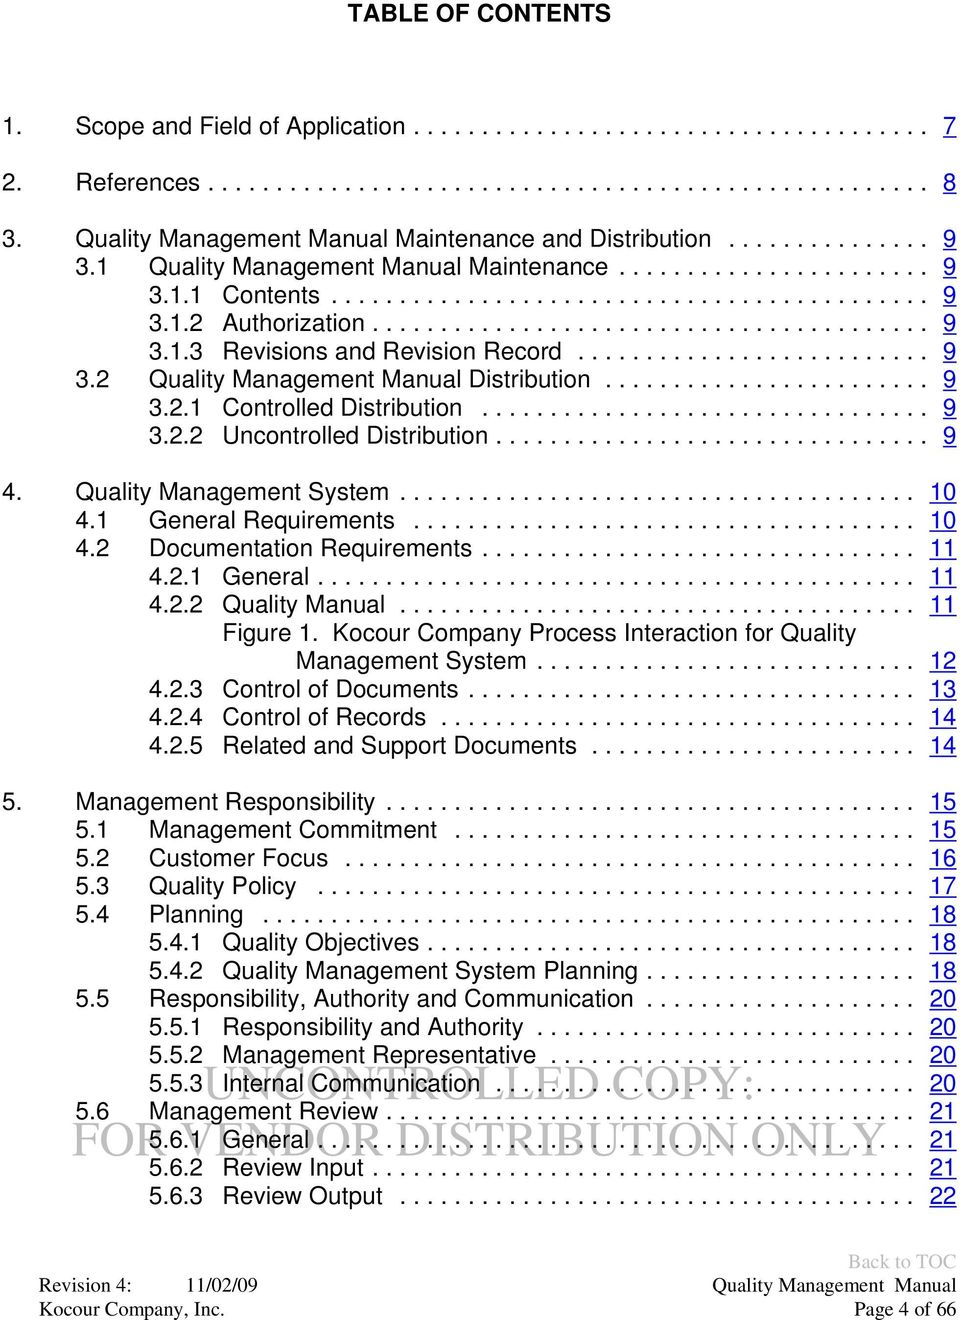 Quality Management System... 10 4.1 General Requirements... 10 4.2 Documentation Requirements... 11 4.2.1 General... 11 4.2.2 Quality Manual... 11 Figure 1.